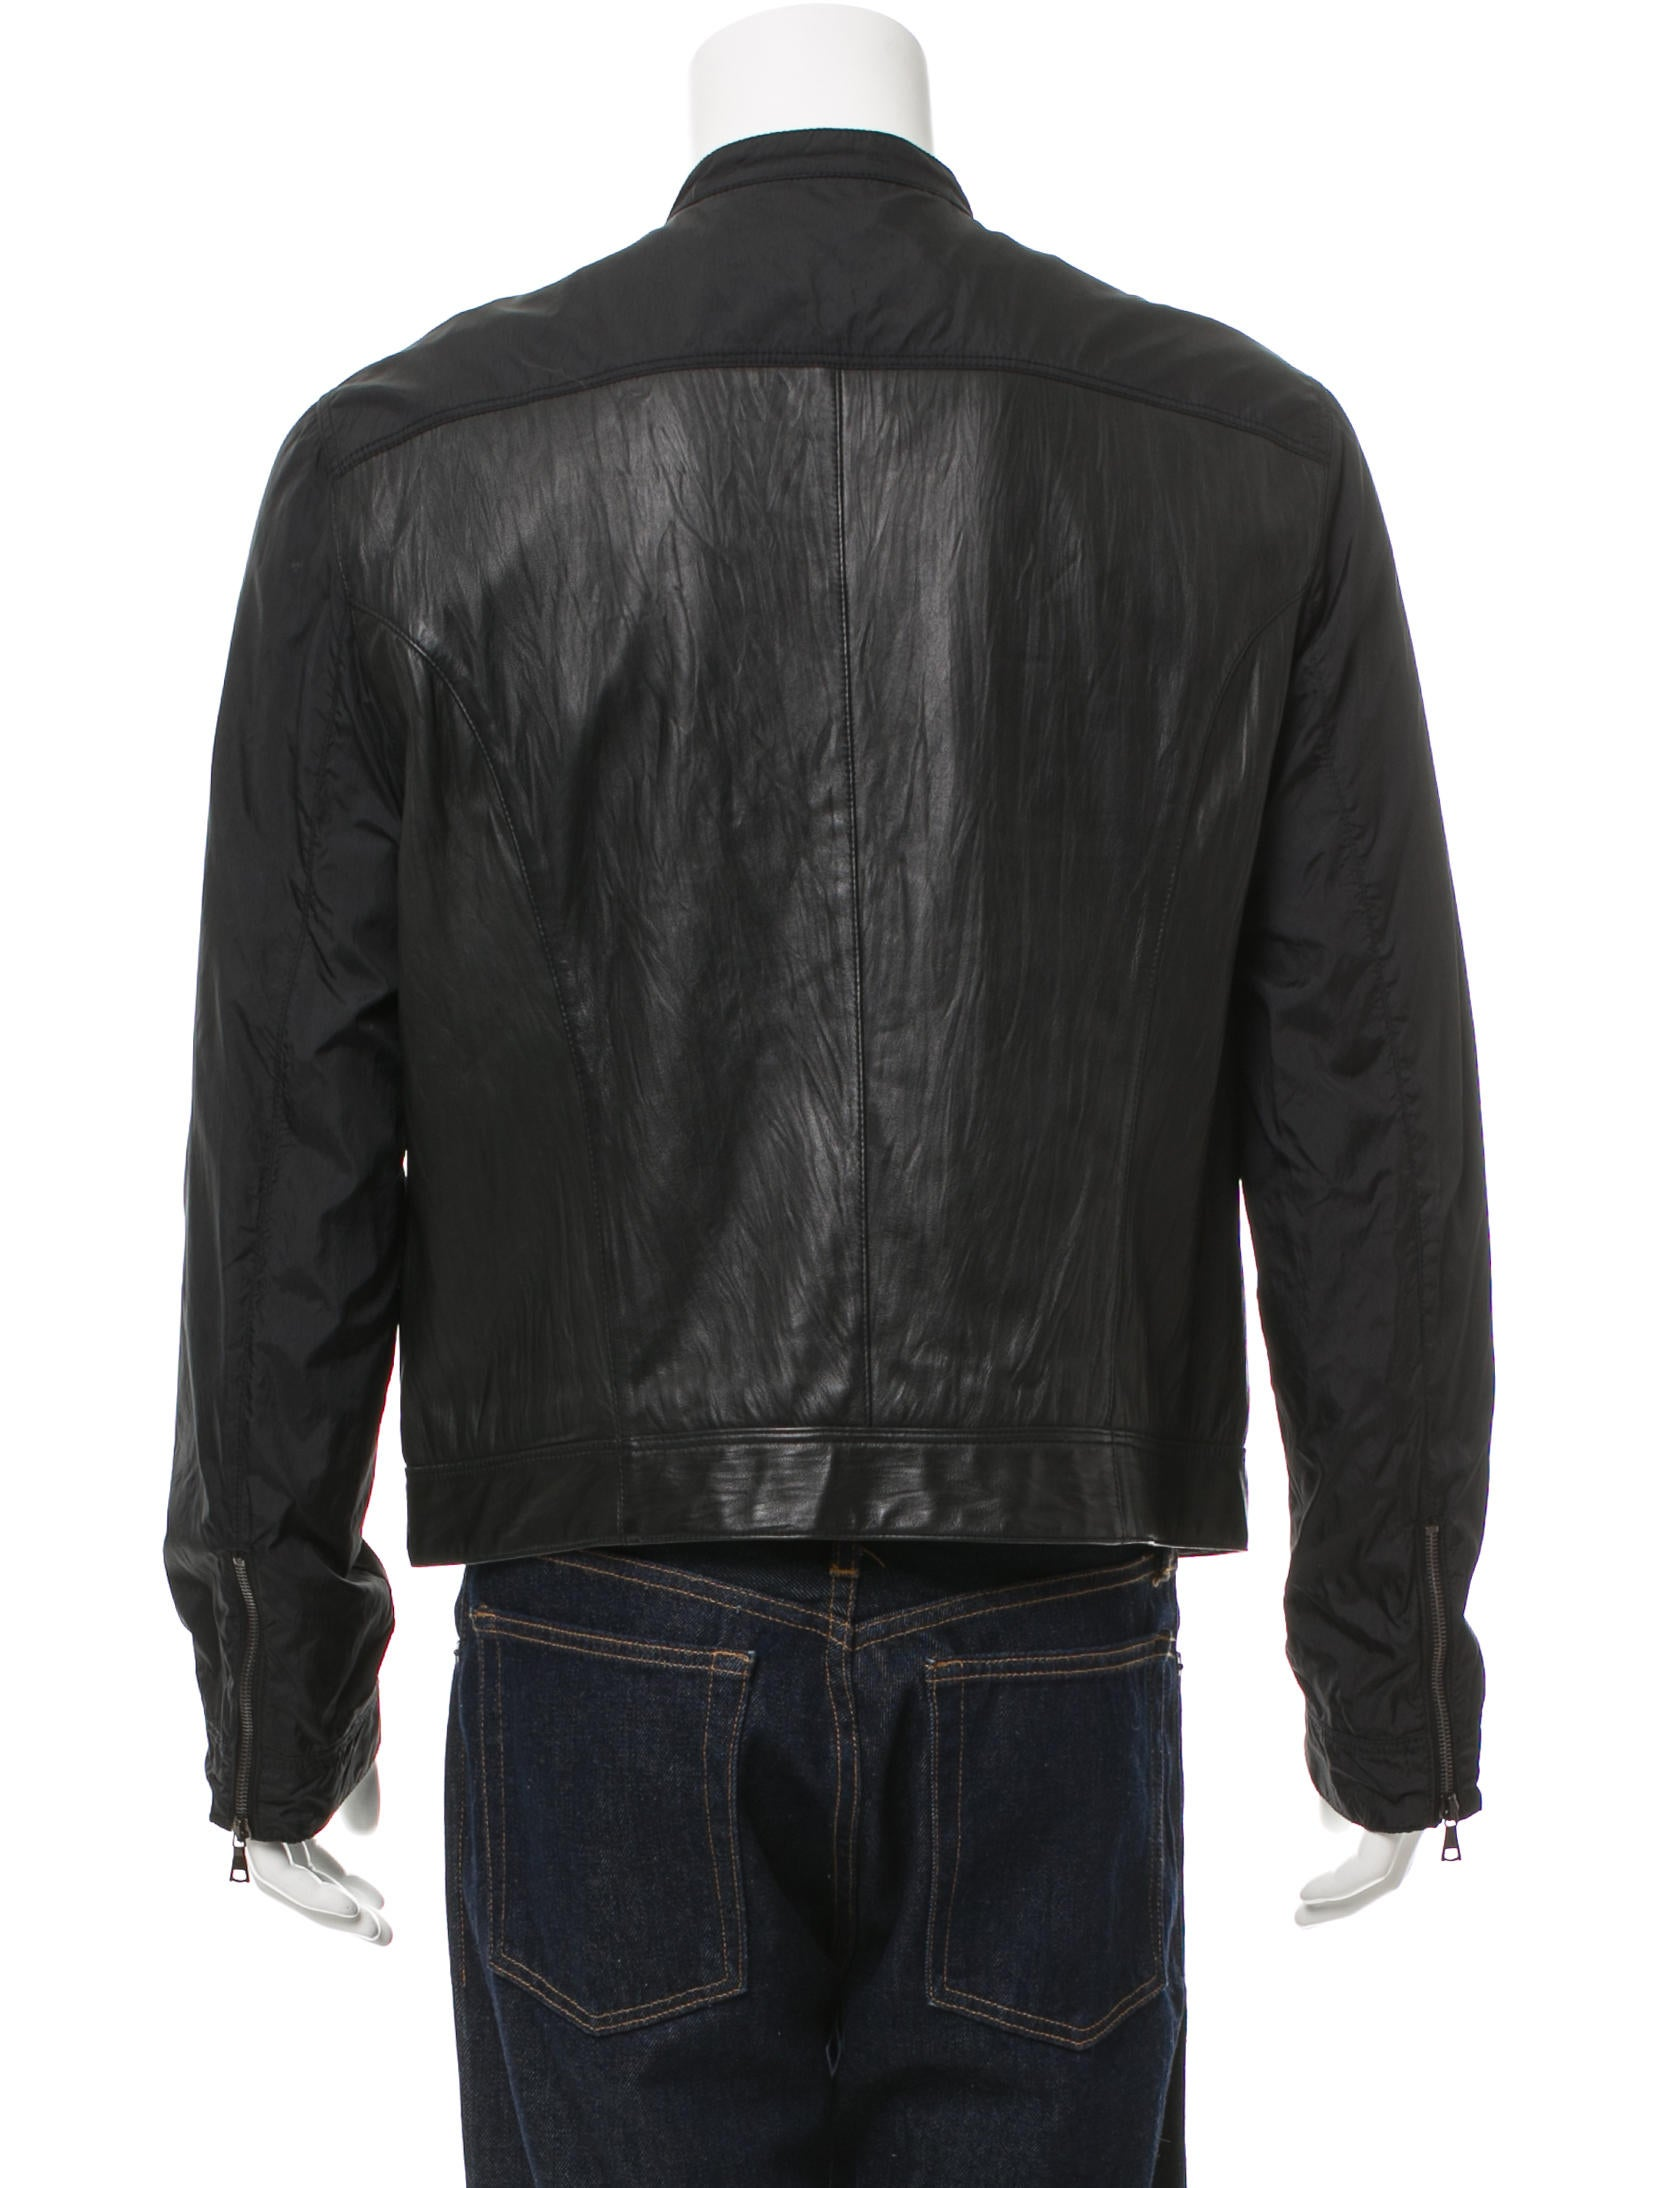 John varvatos leather jacket sale